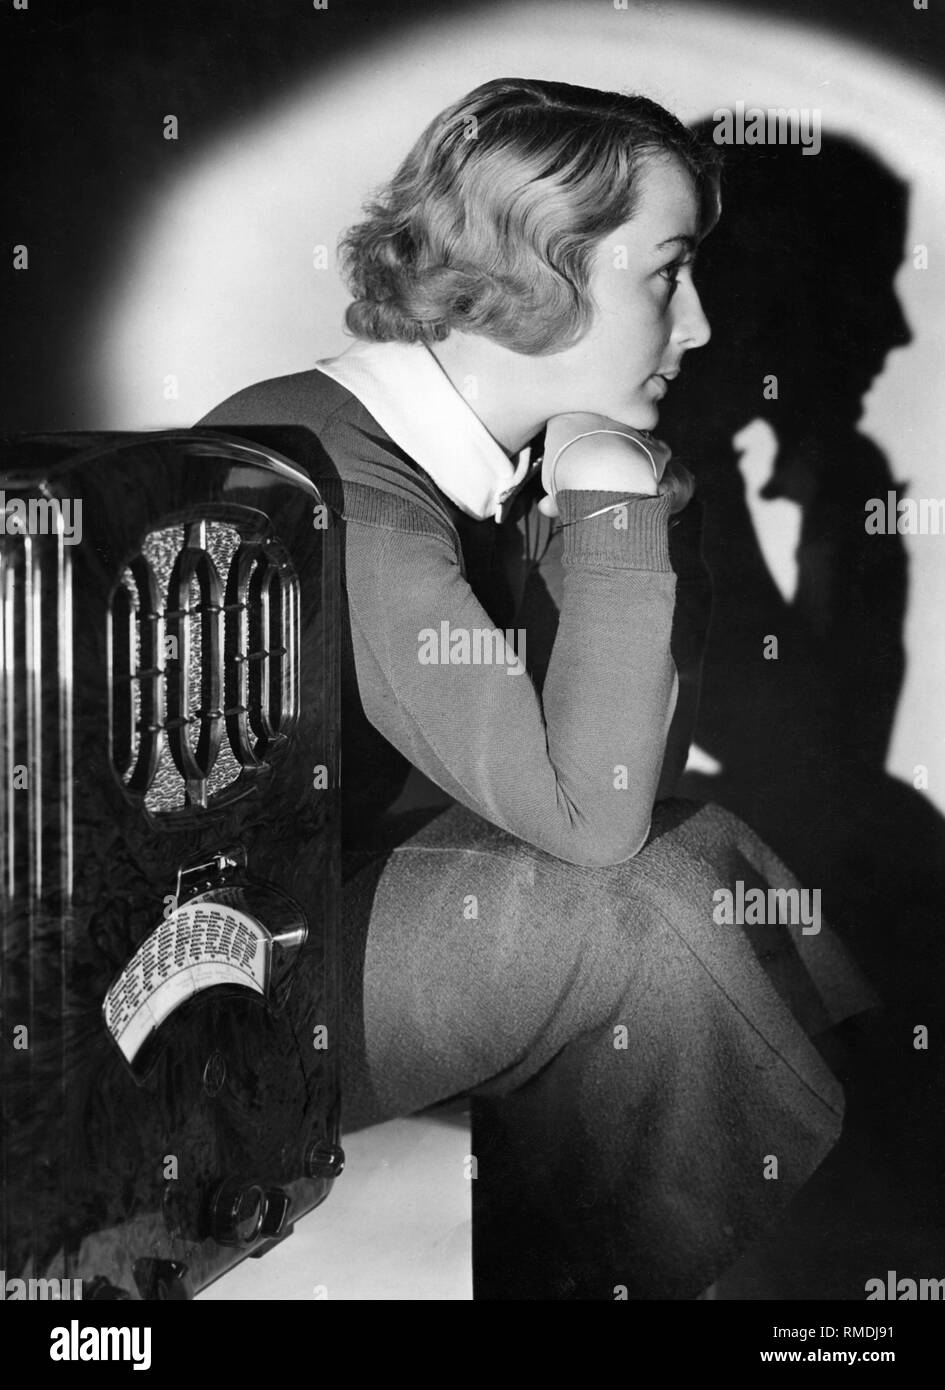 A young women listens to the radio. Advertising shot. Undated picture. Stock Photo